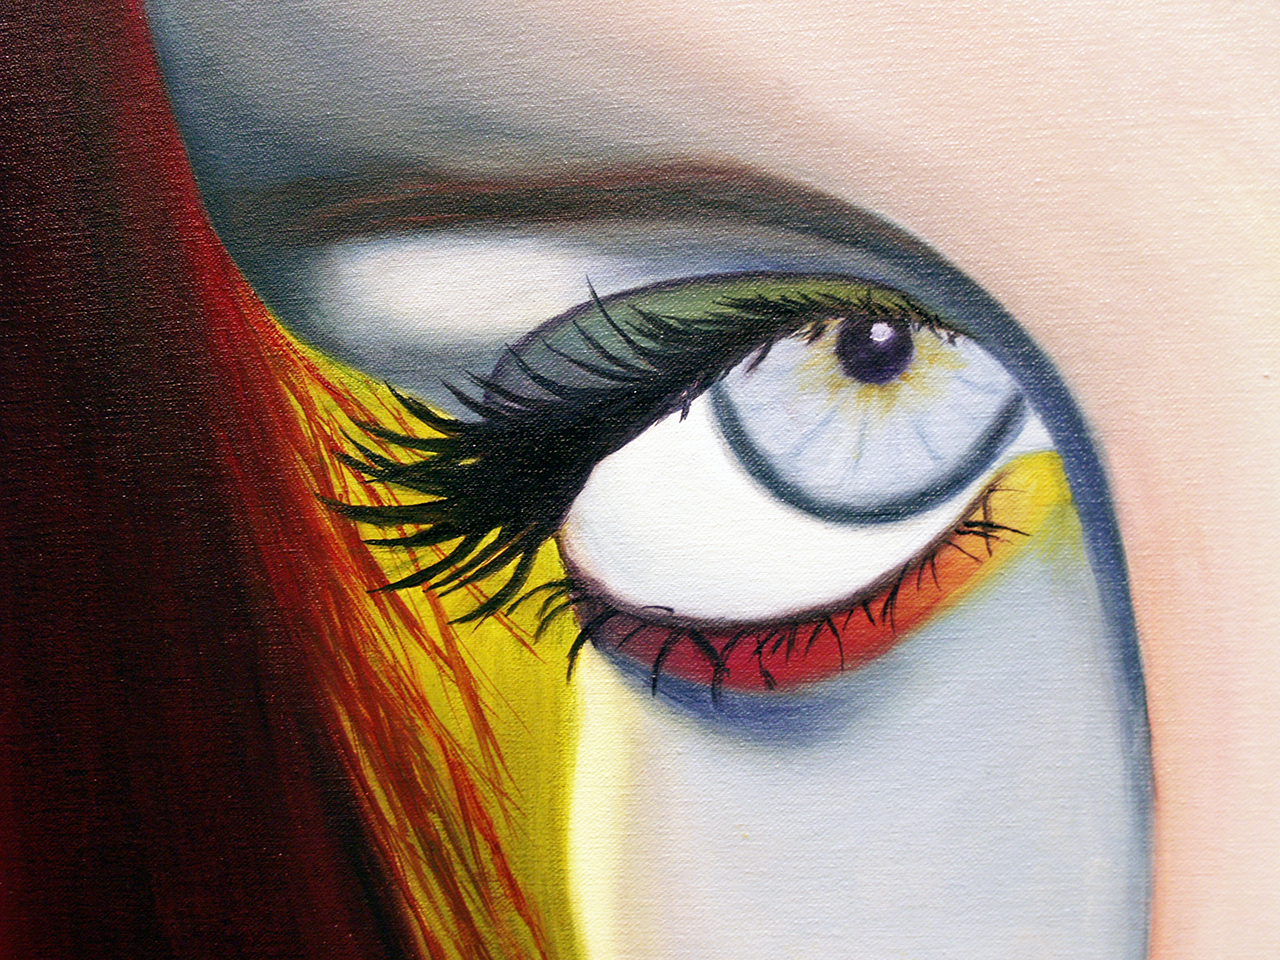 Photo by Beth Meemken. Senior artist Michaela Chorn's self portrait with colorful eyes and oil on canvas.